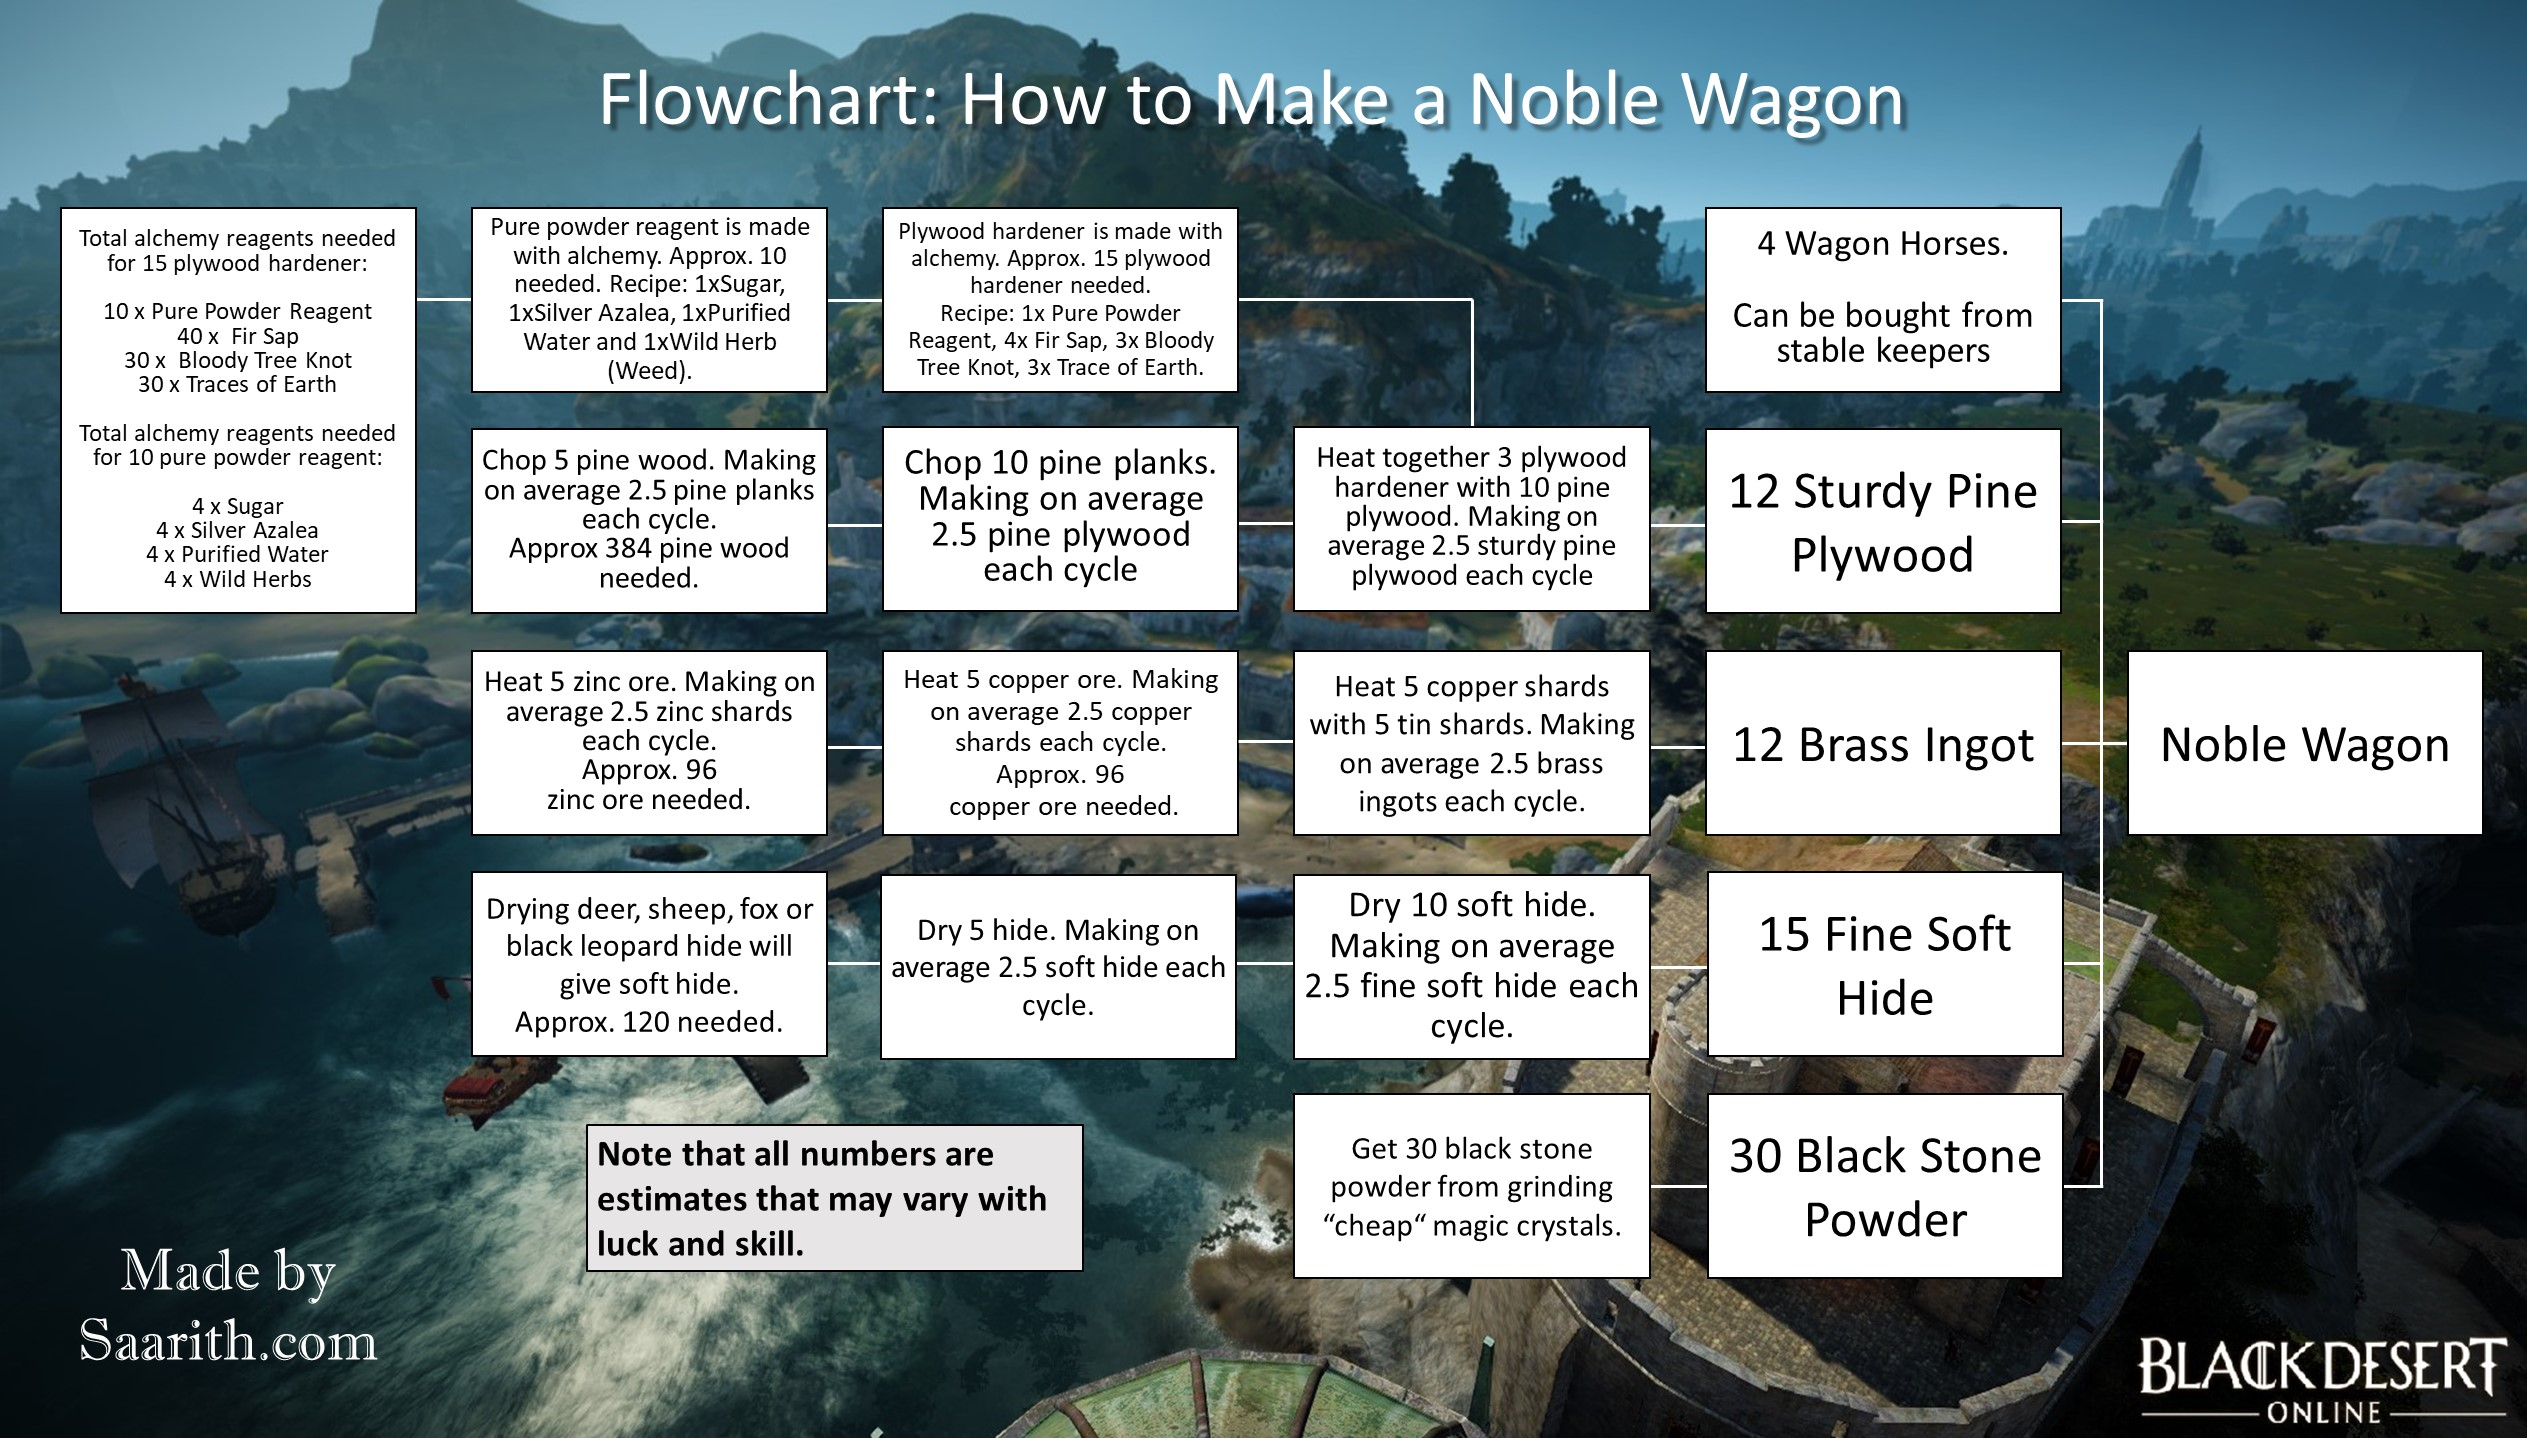 Flowchart showing how to make a noble wagon in black desert online